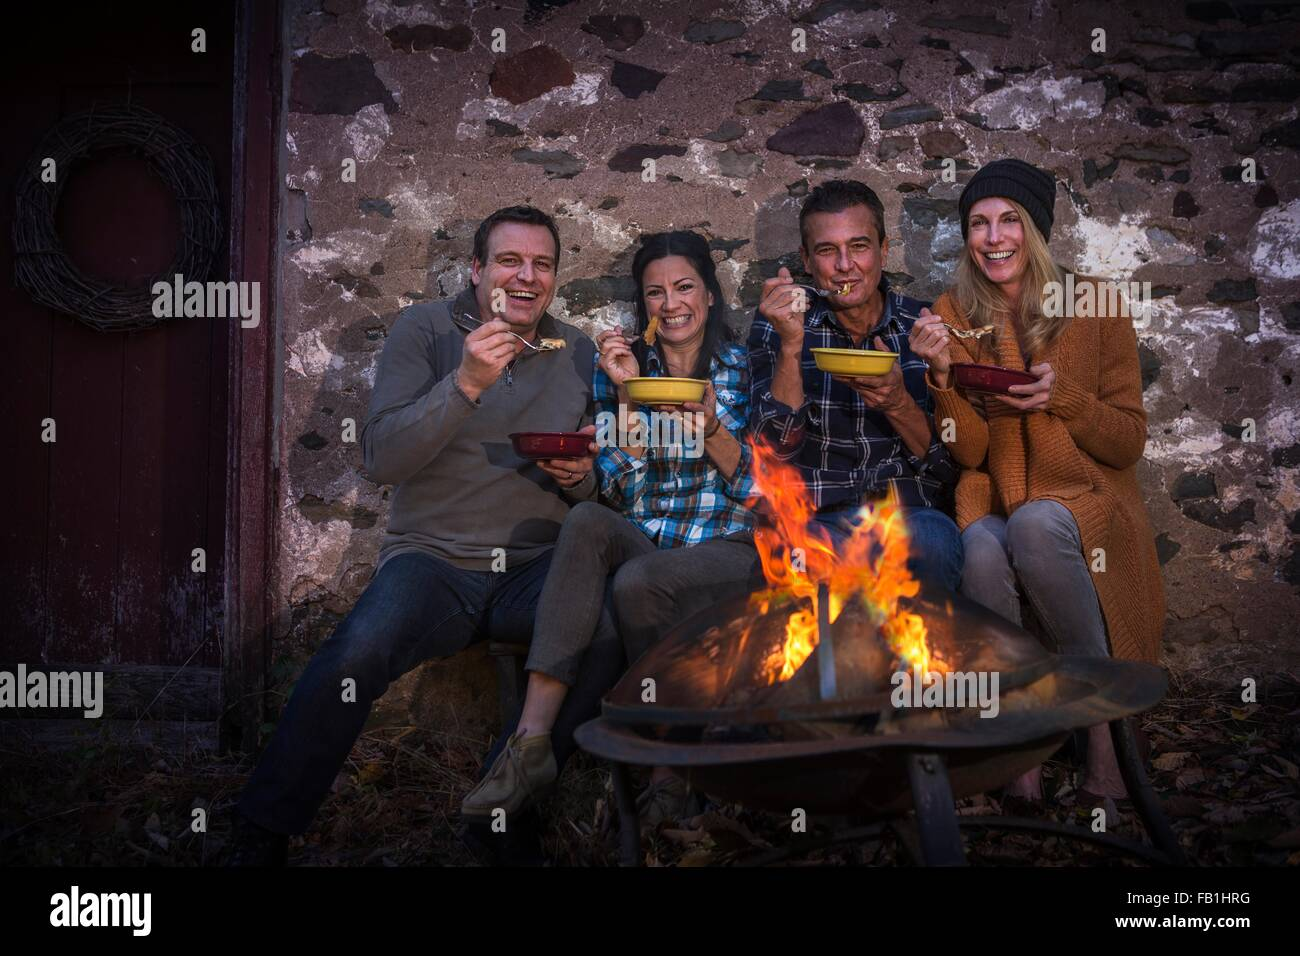 Portrait of two mature couples eating in front of campfire at night - Stock Image